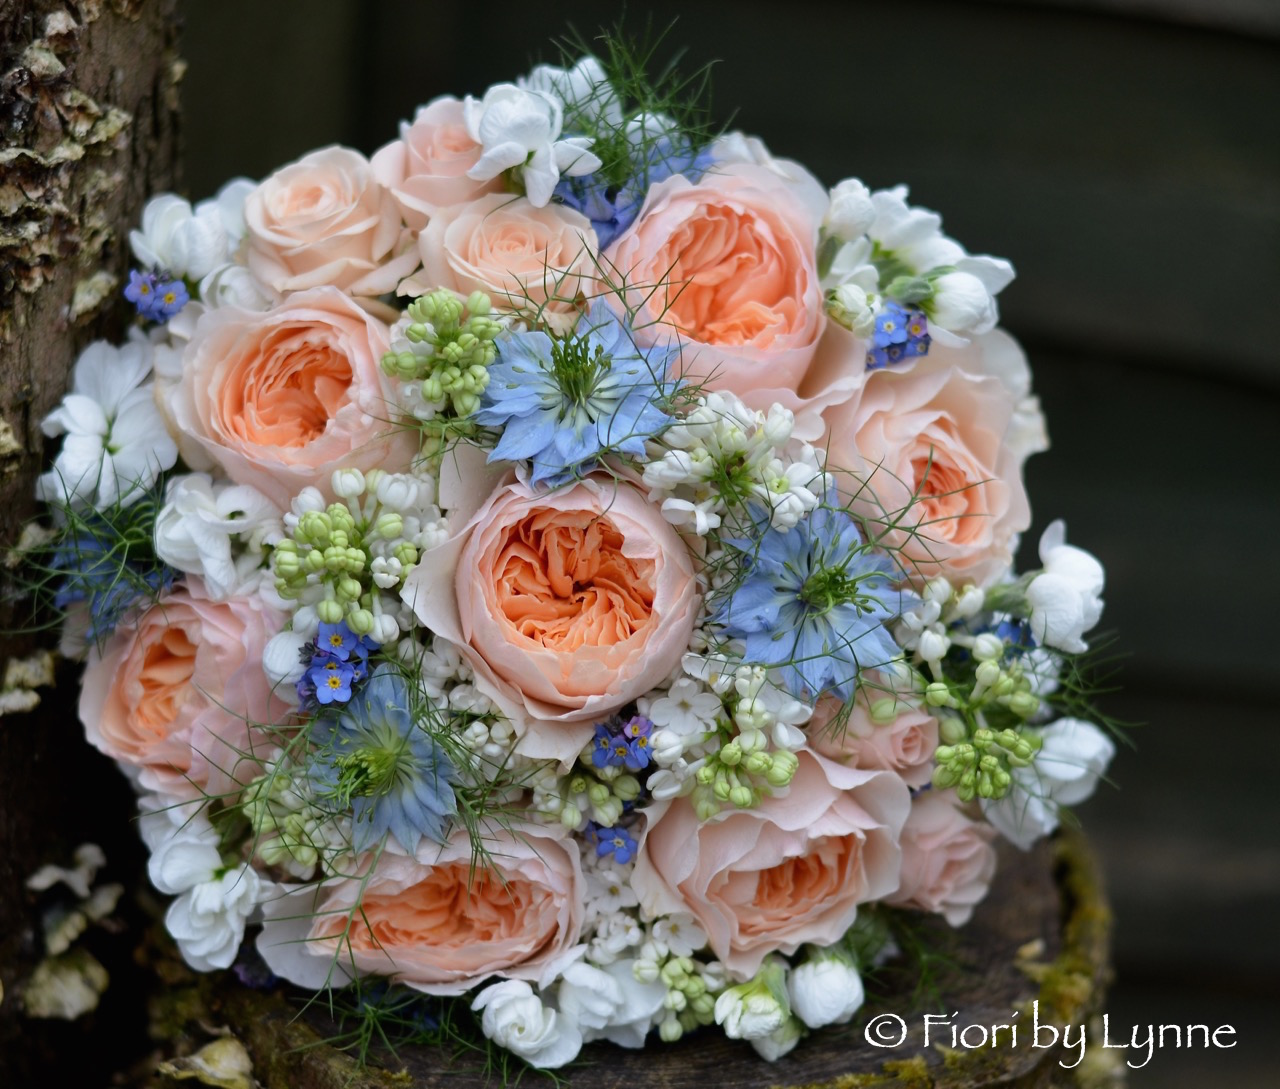 peach-blue-whitebouquet-juliet-rose-nigella-stocks.jpg